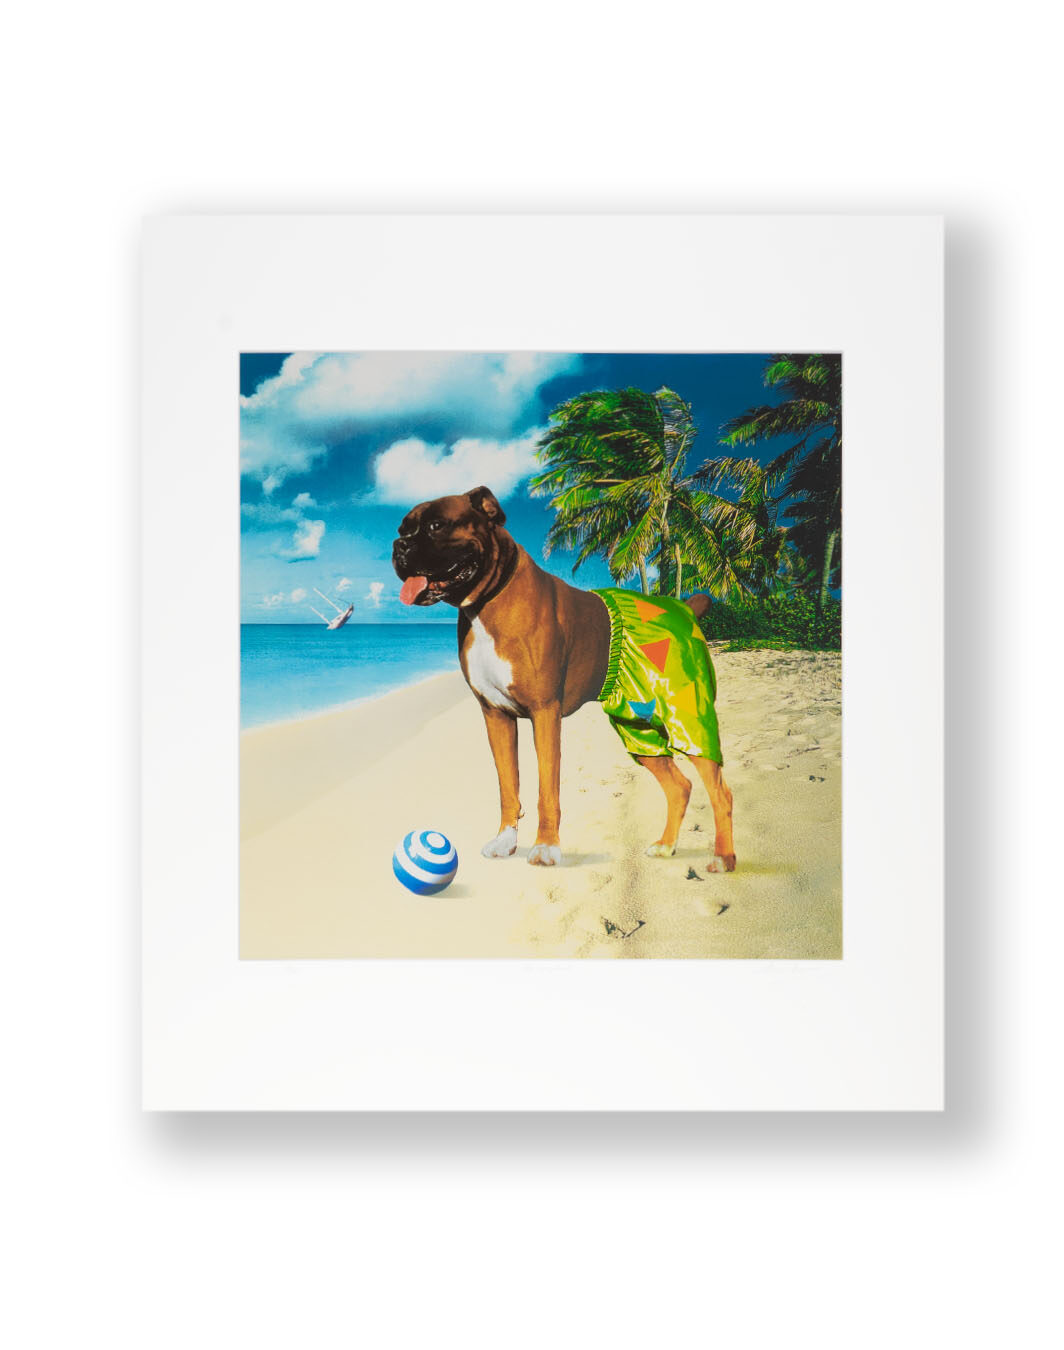 LIMITED EDITION PRINT SIGNED BY STORM THORGERSON